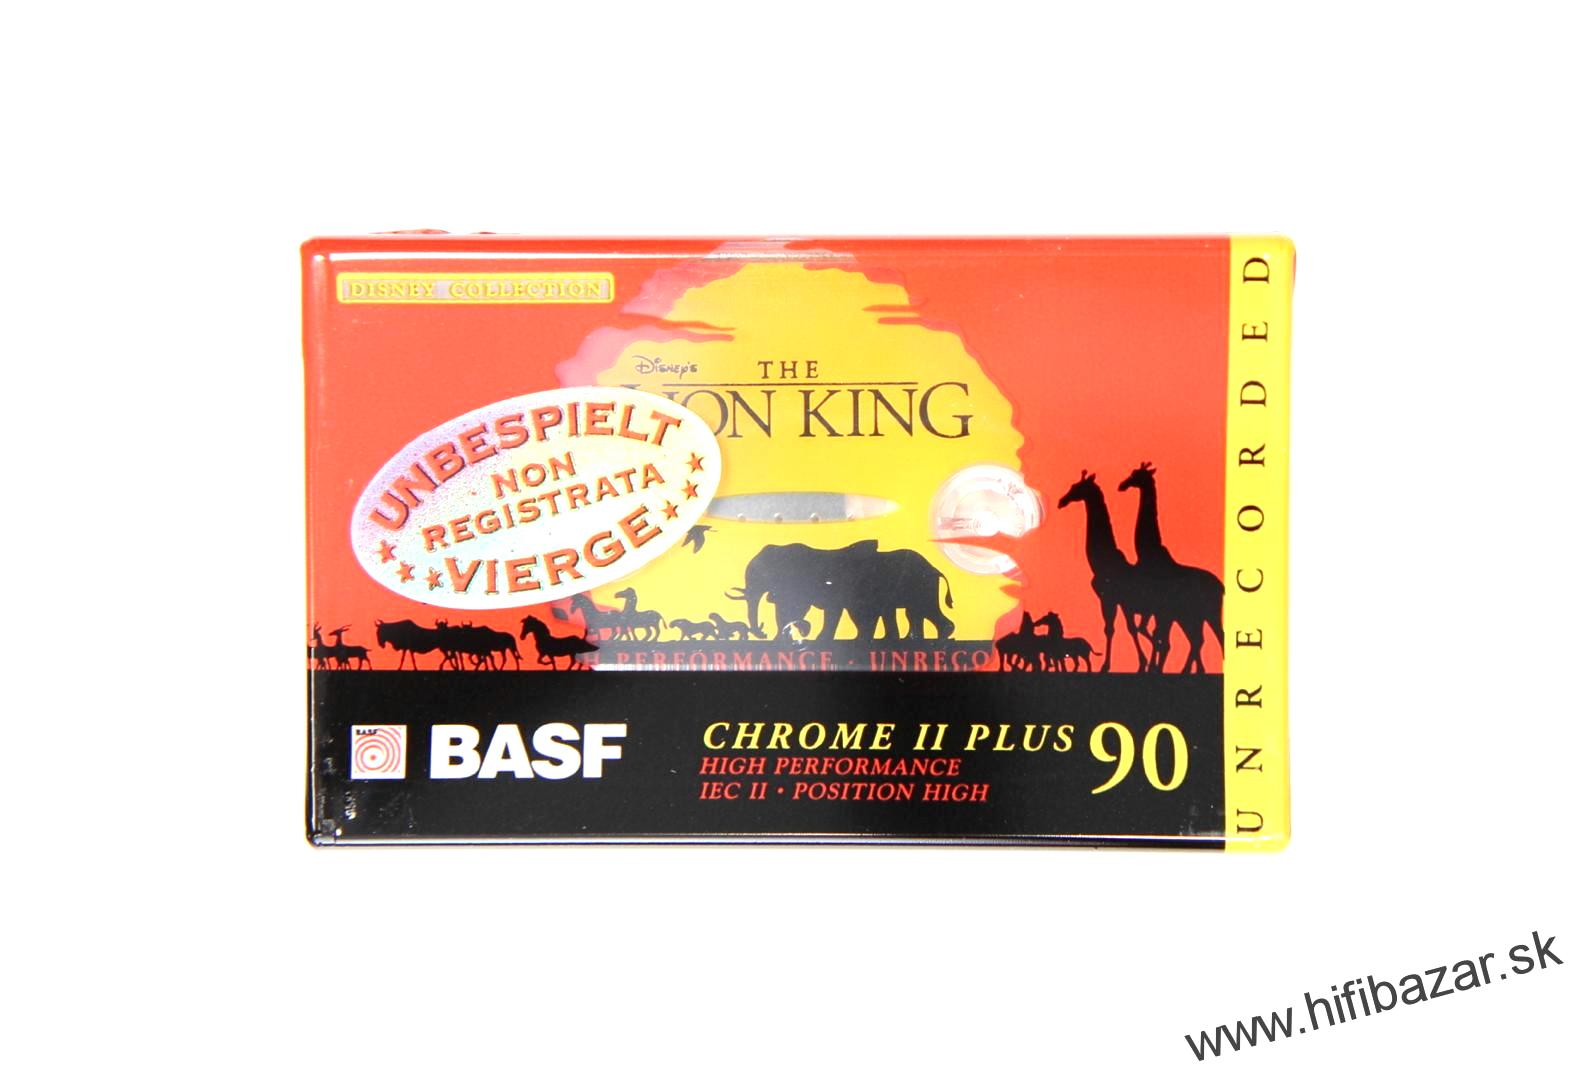 BASF 90 Lion King